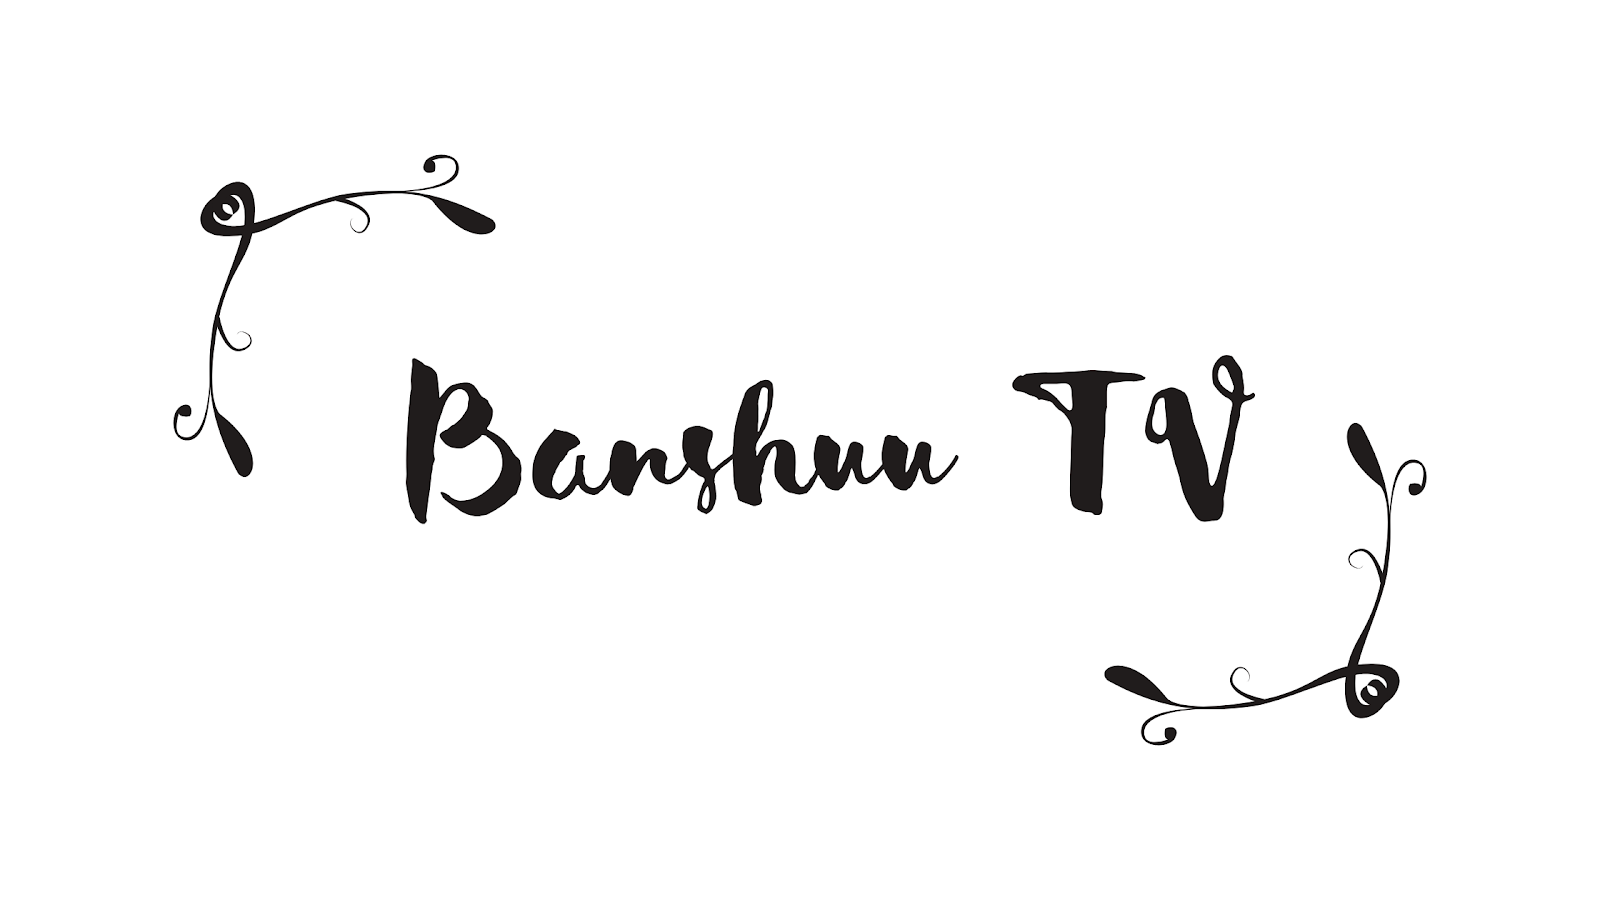 Banshuu TV